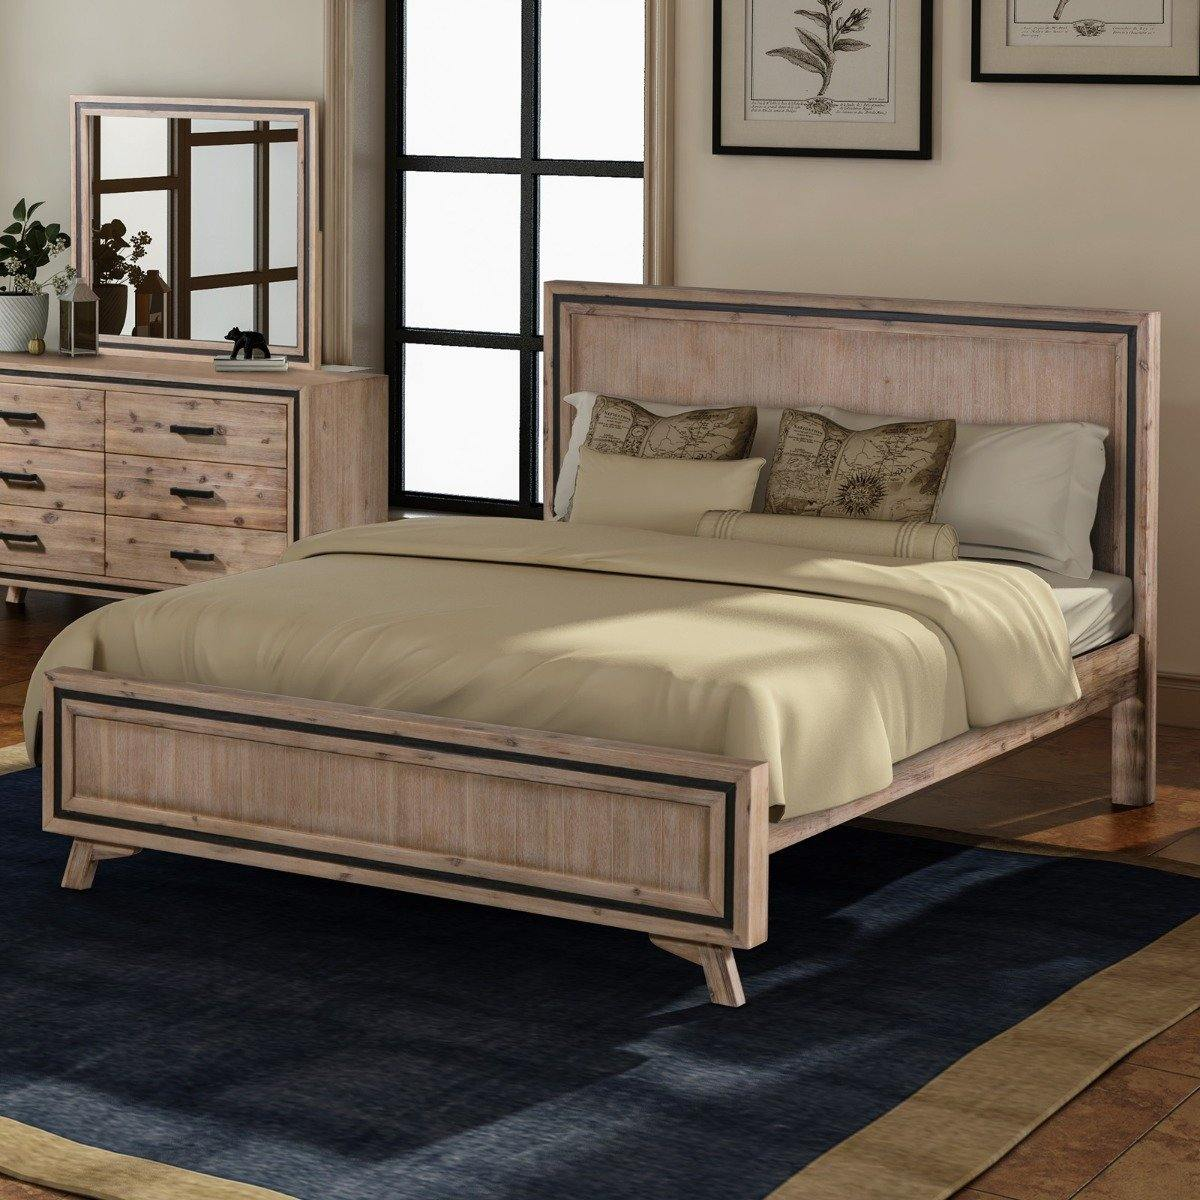 Seashore Queen Bed